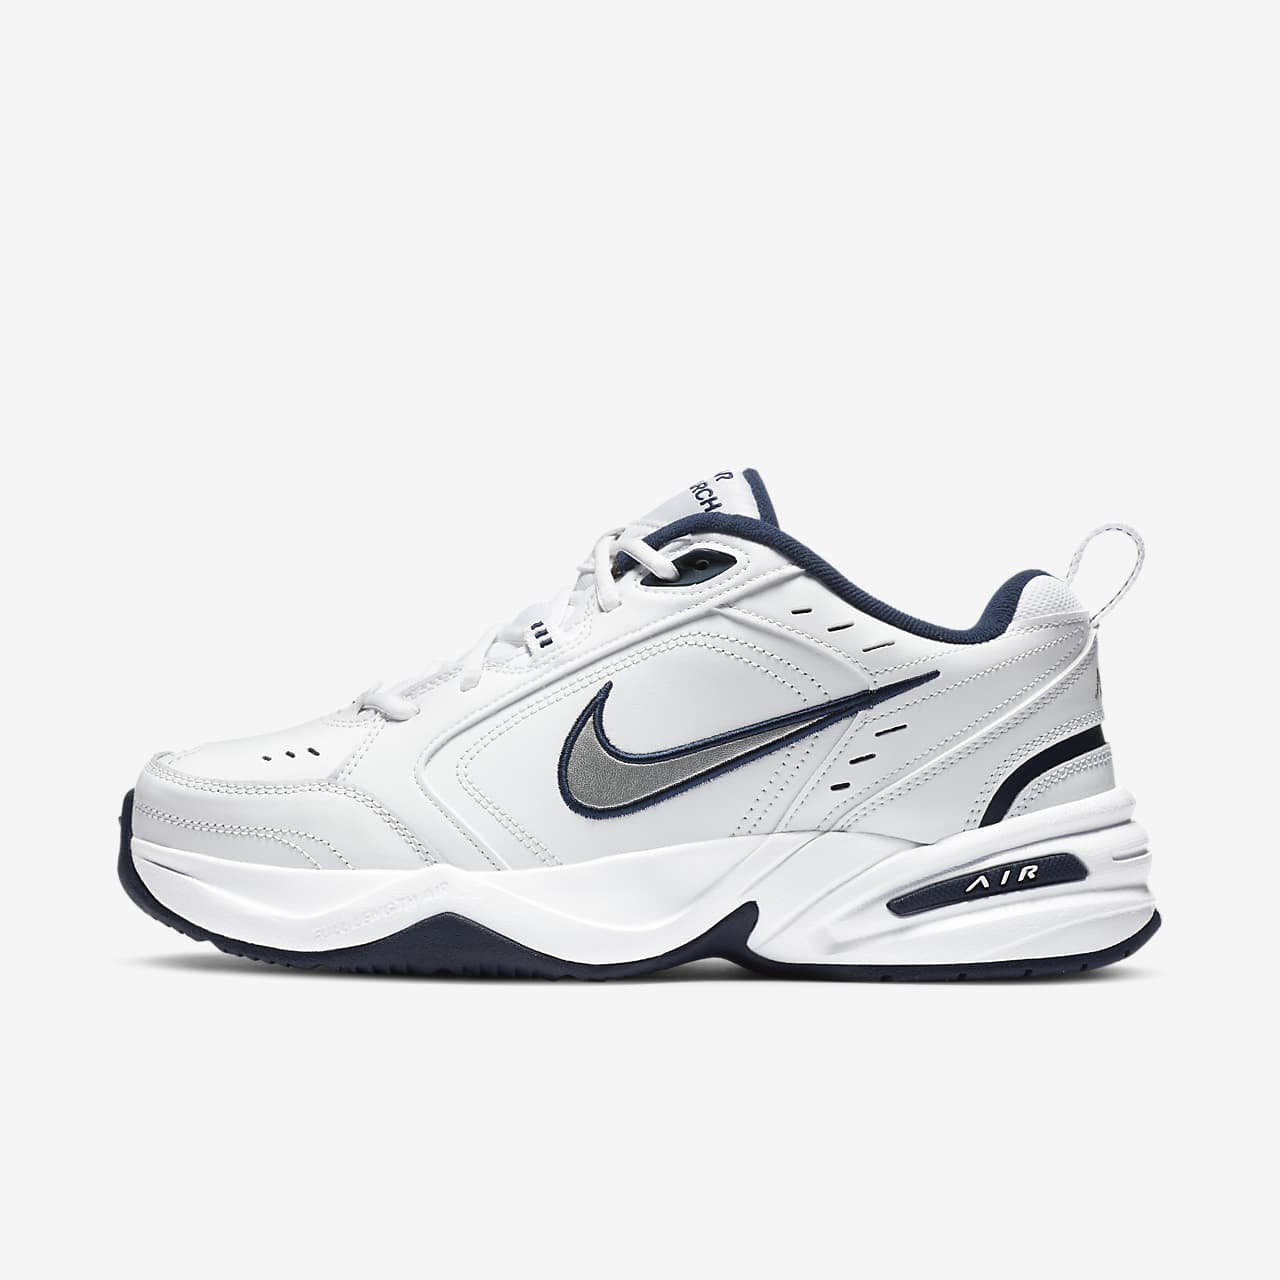 sports shoes 233cb 59b81 ... Calzado de gimnasio y estilo de vida Nike Air Monarch IV